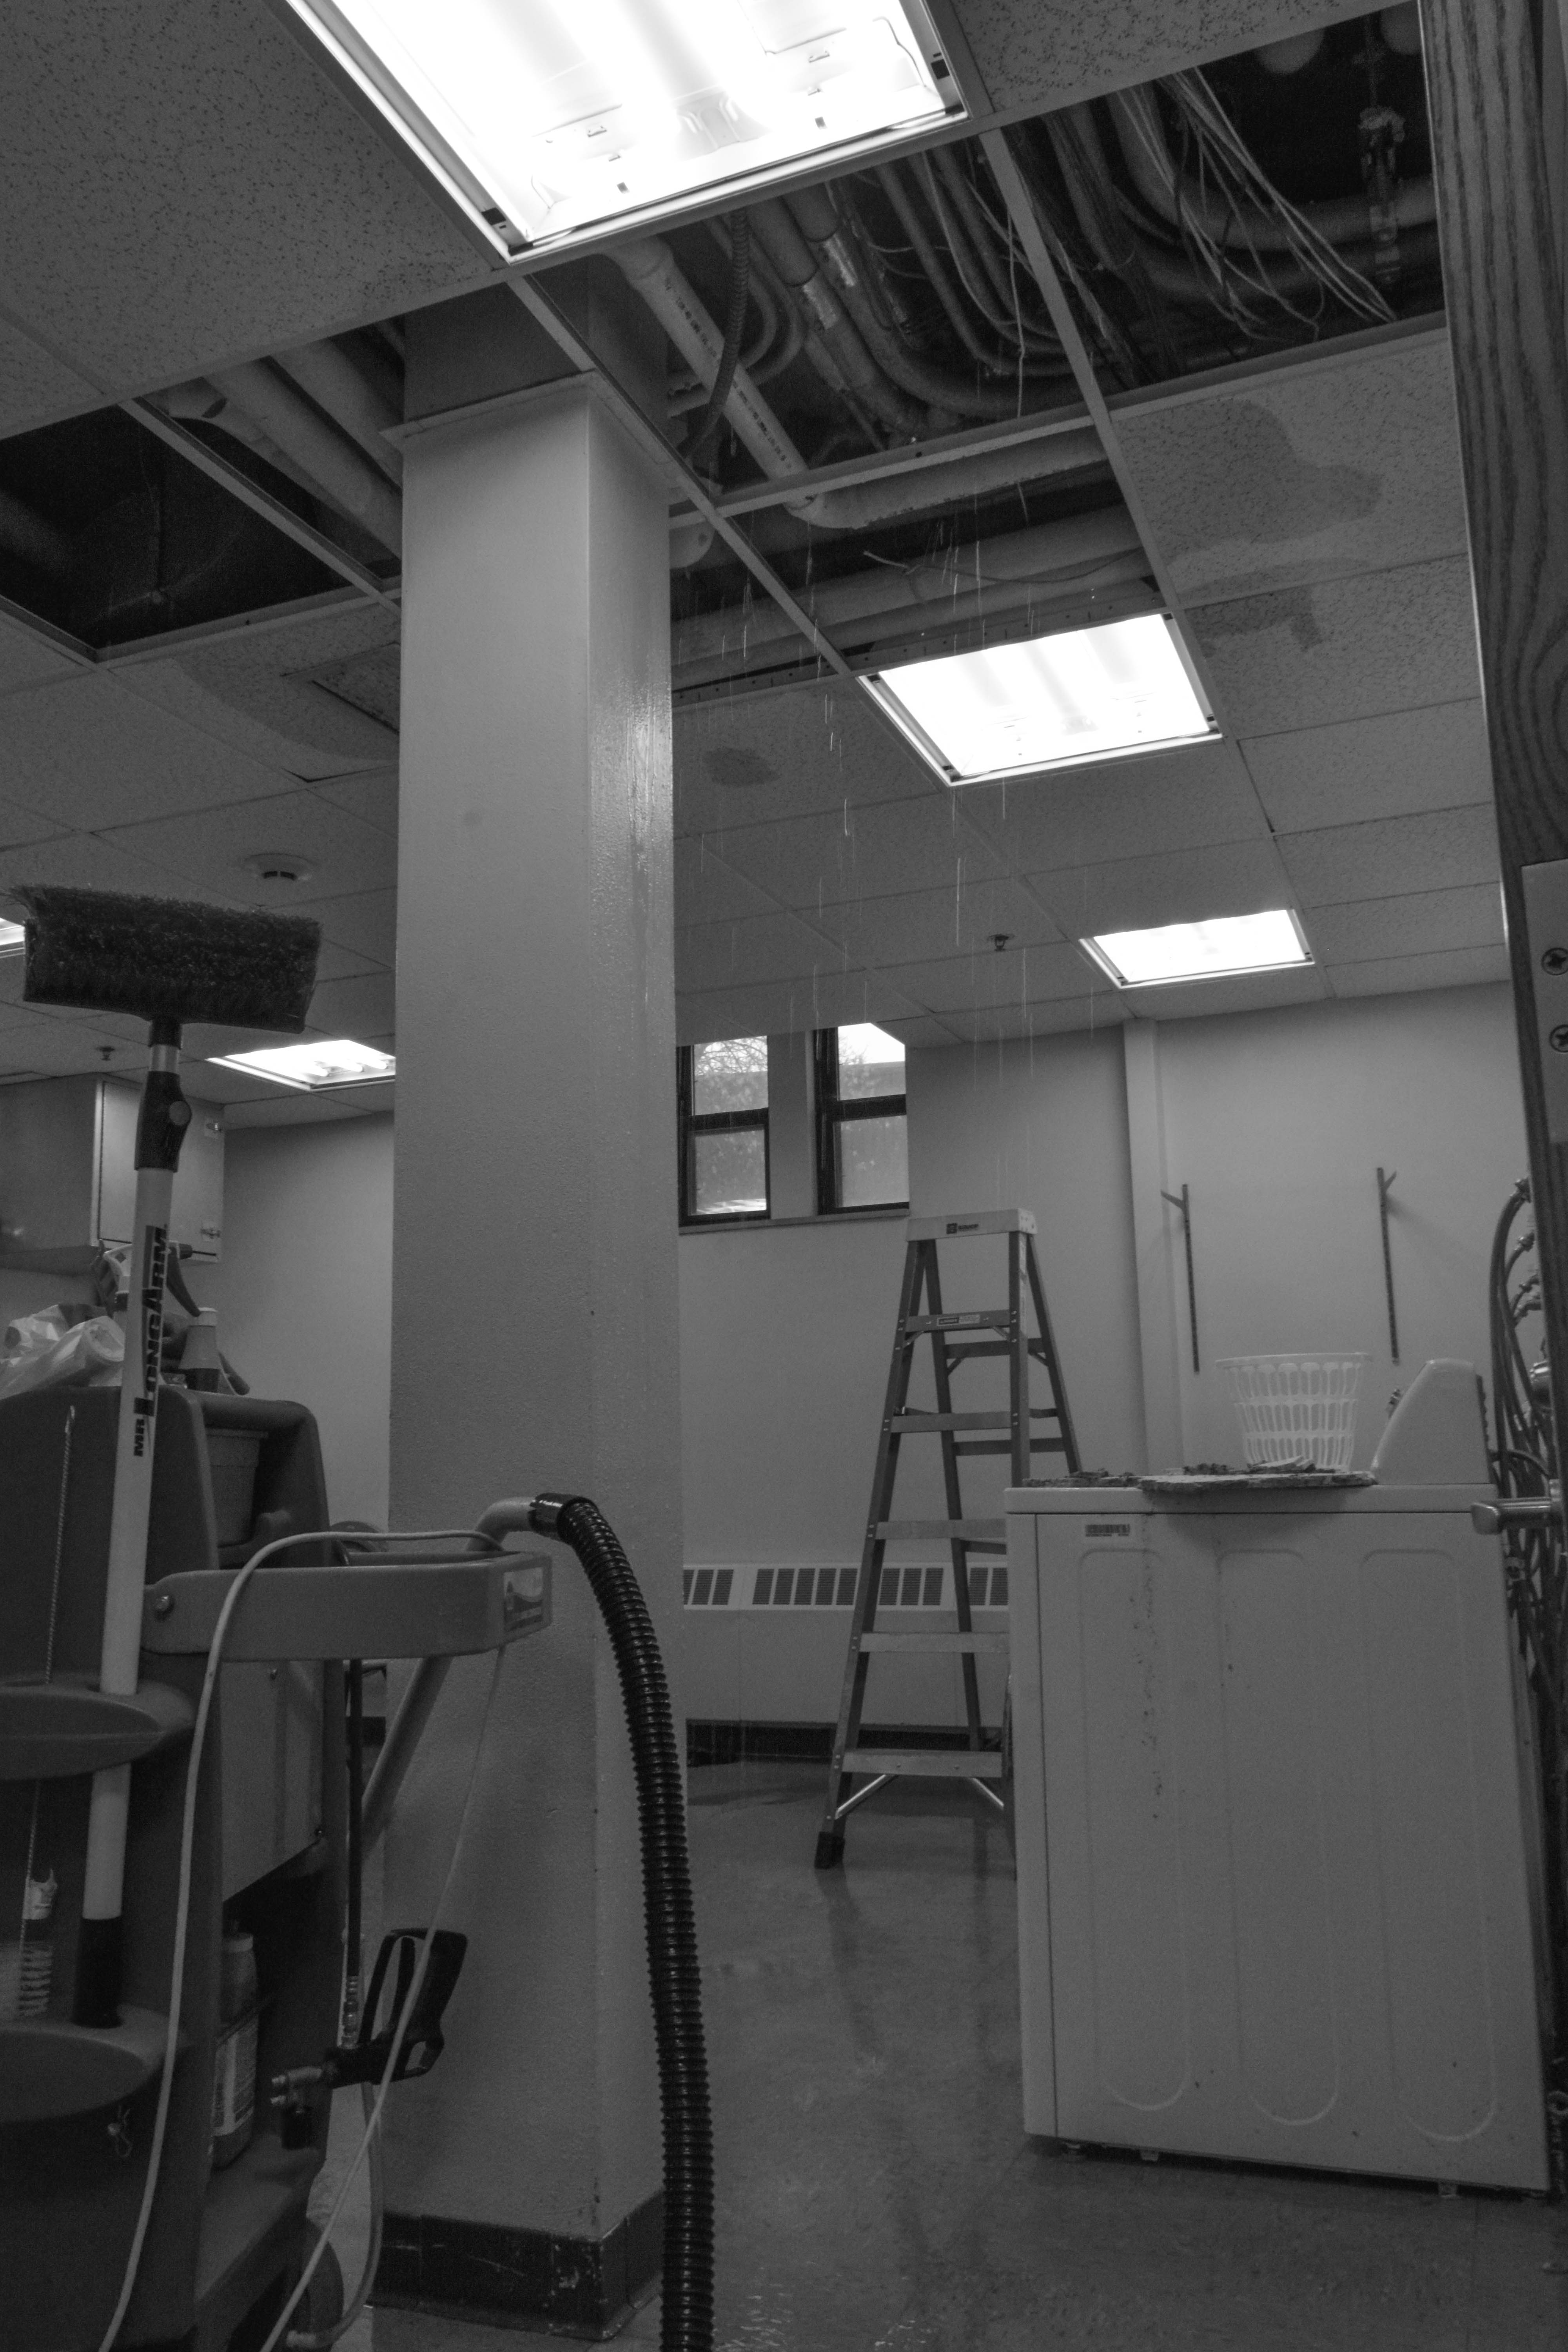 As the snow began melting, water started pouring from the ceiling in the Uhler laundry room.